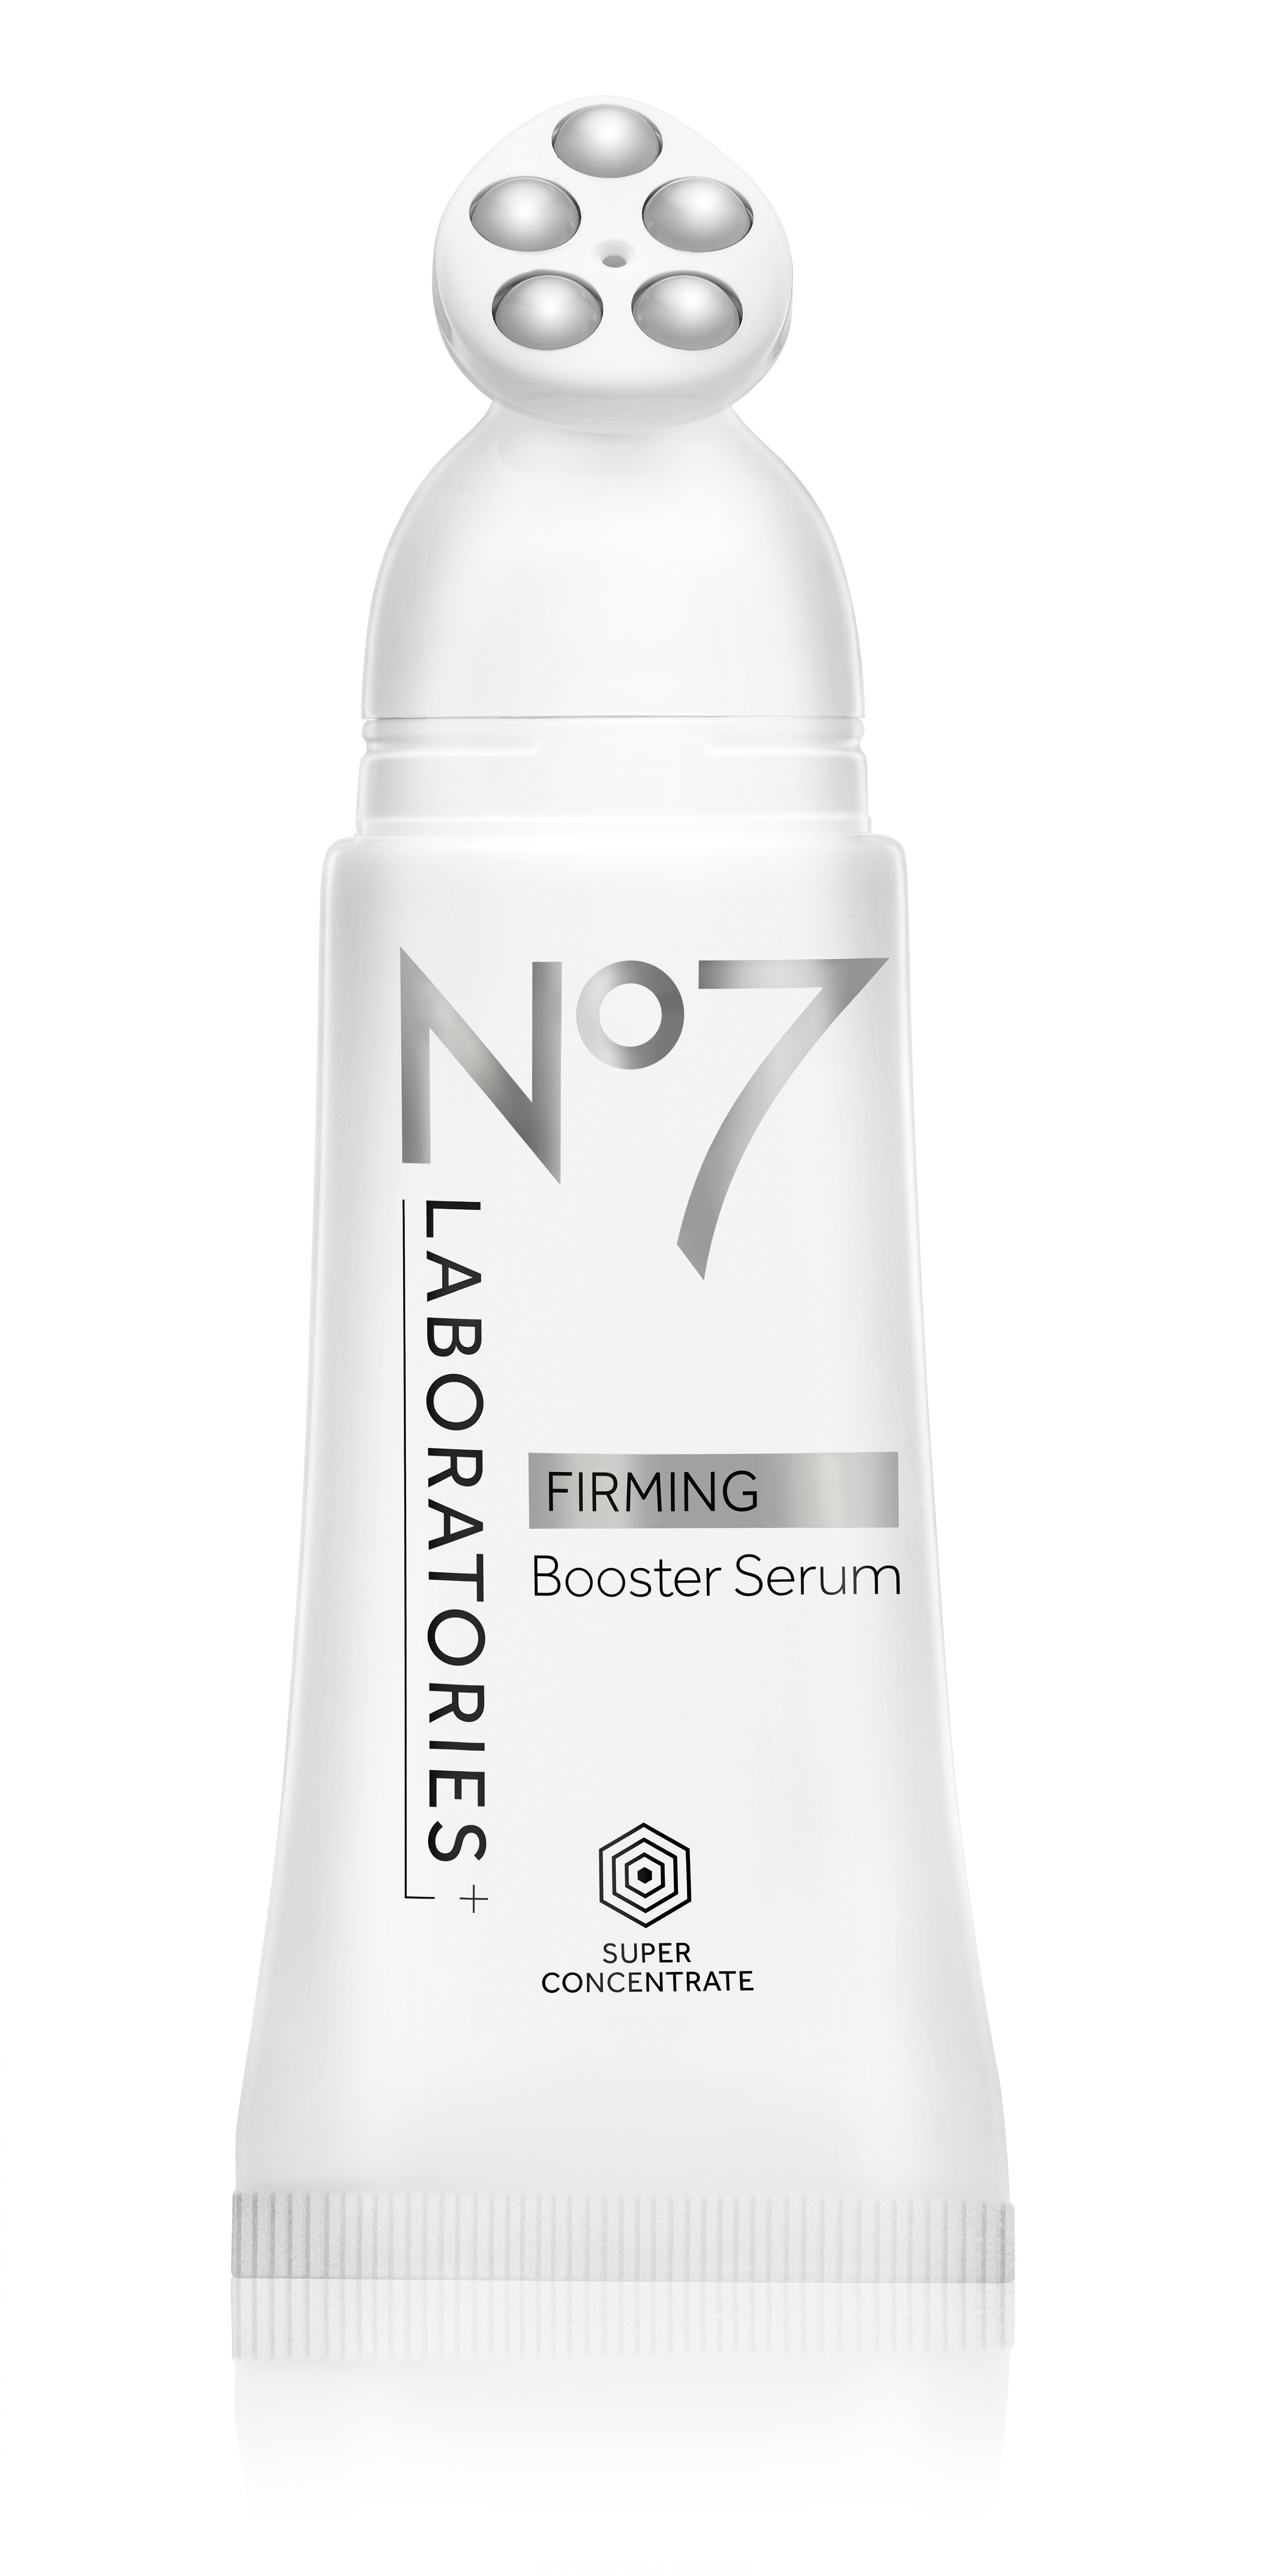 Boots new No7 Laboratories Booster serums are half price tomorrow